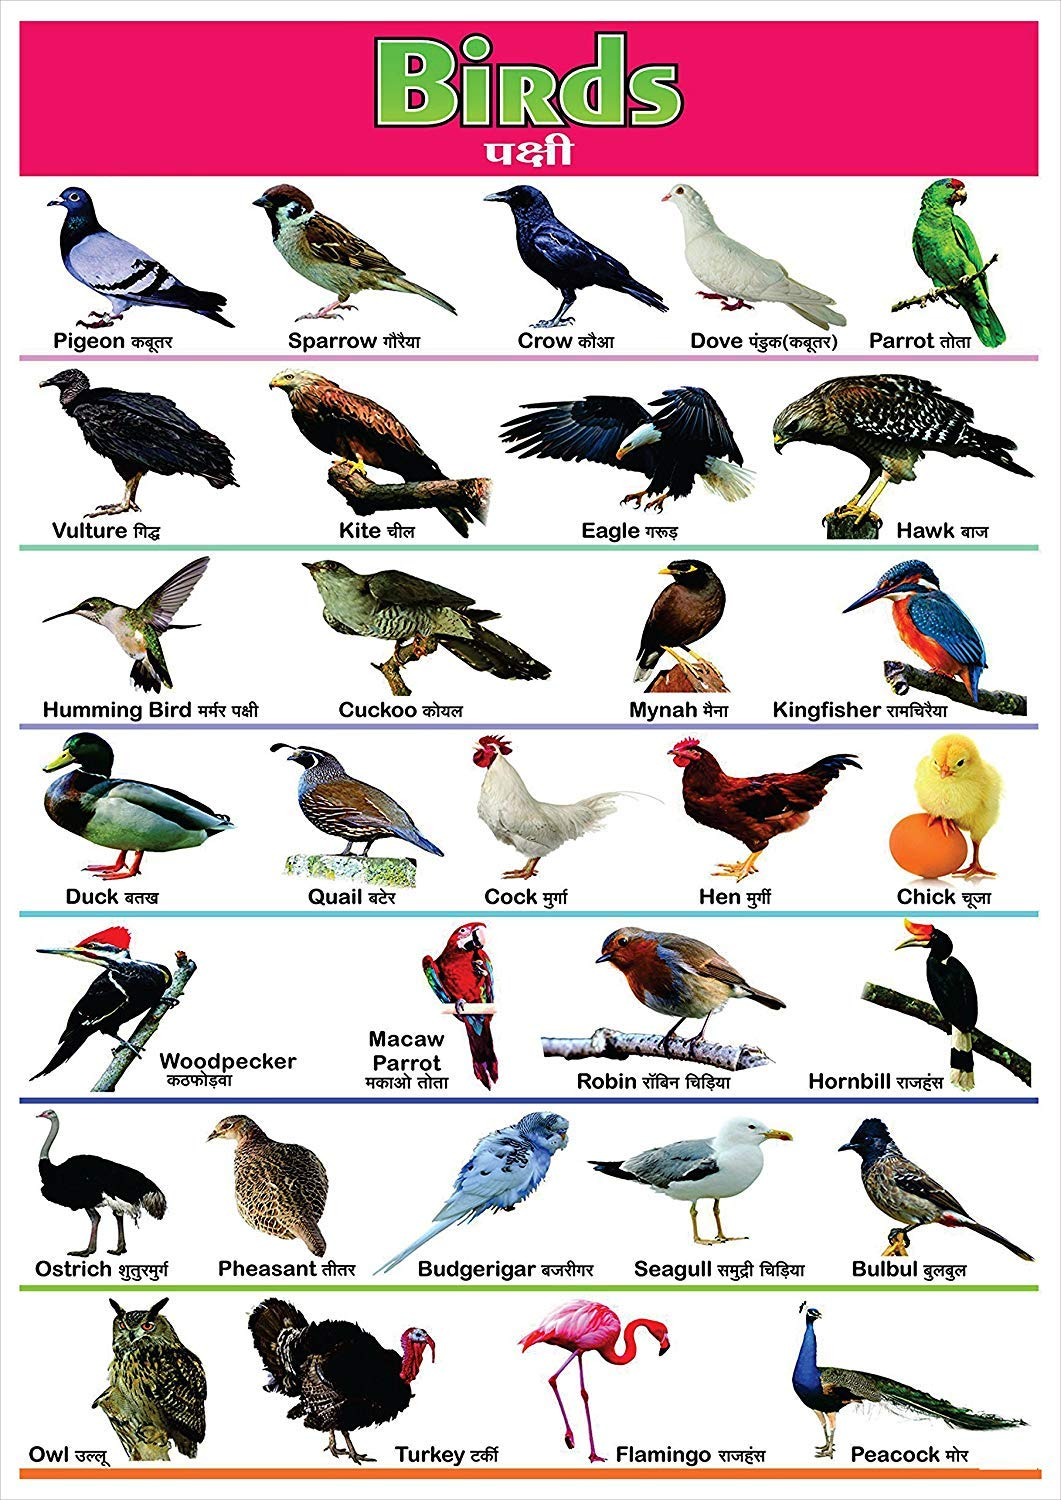 Birds Name For Kids In English And Hindi With Pictures पक ष य क न म